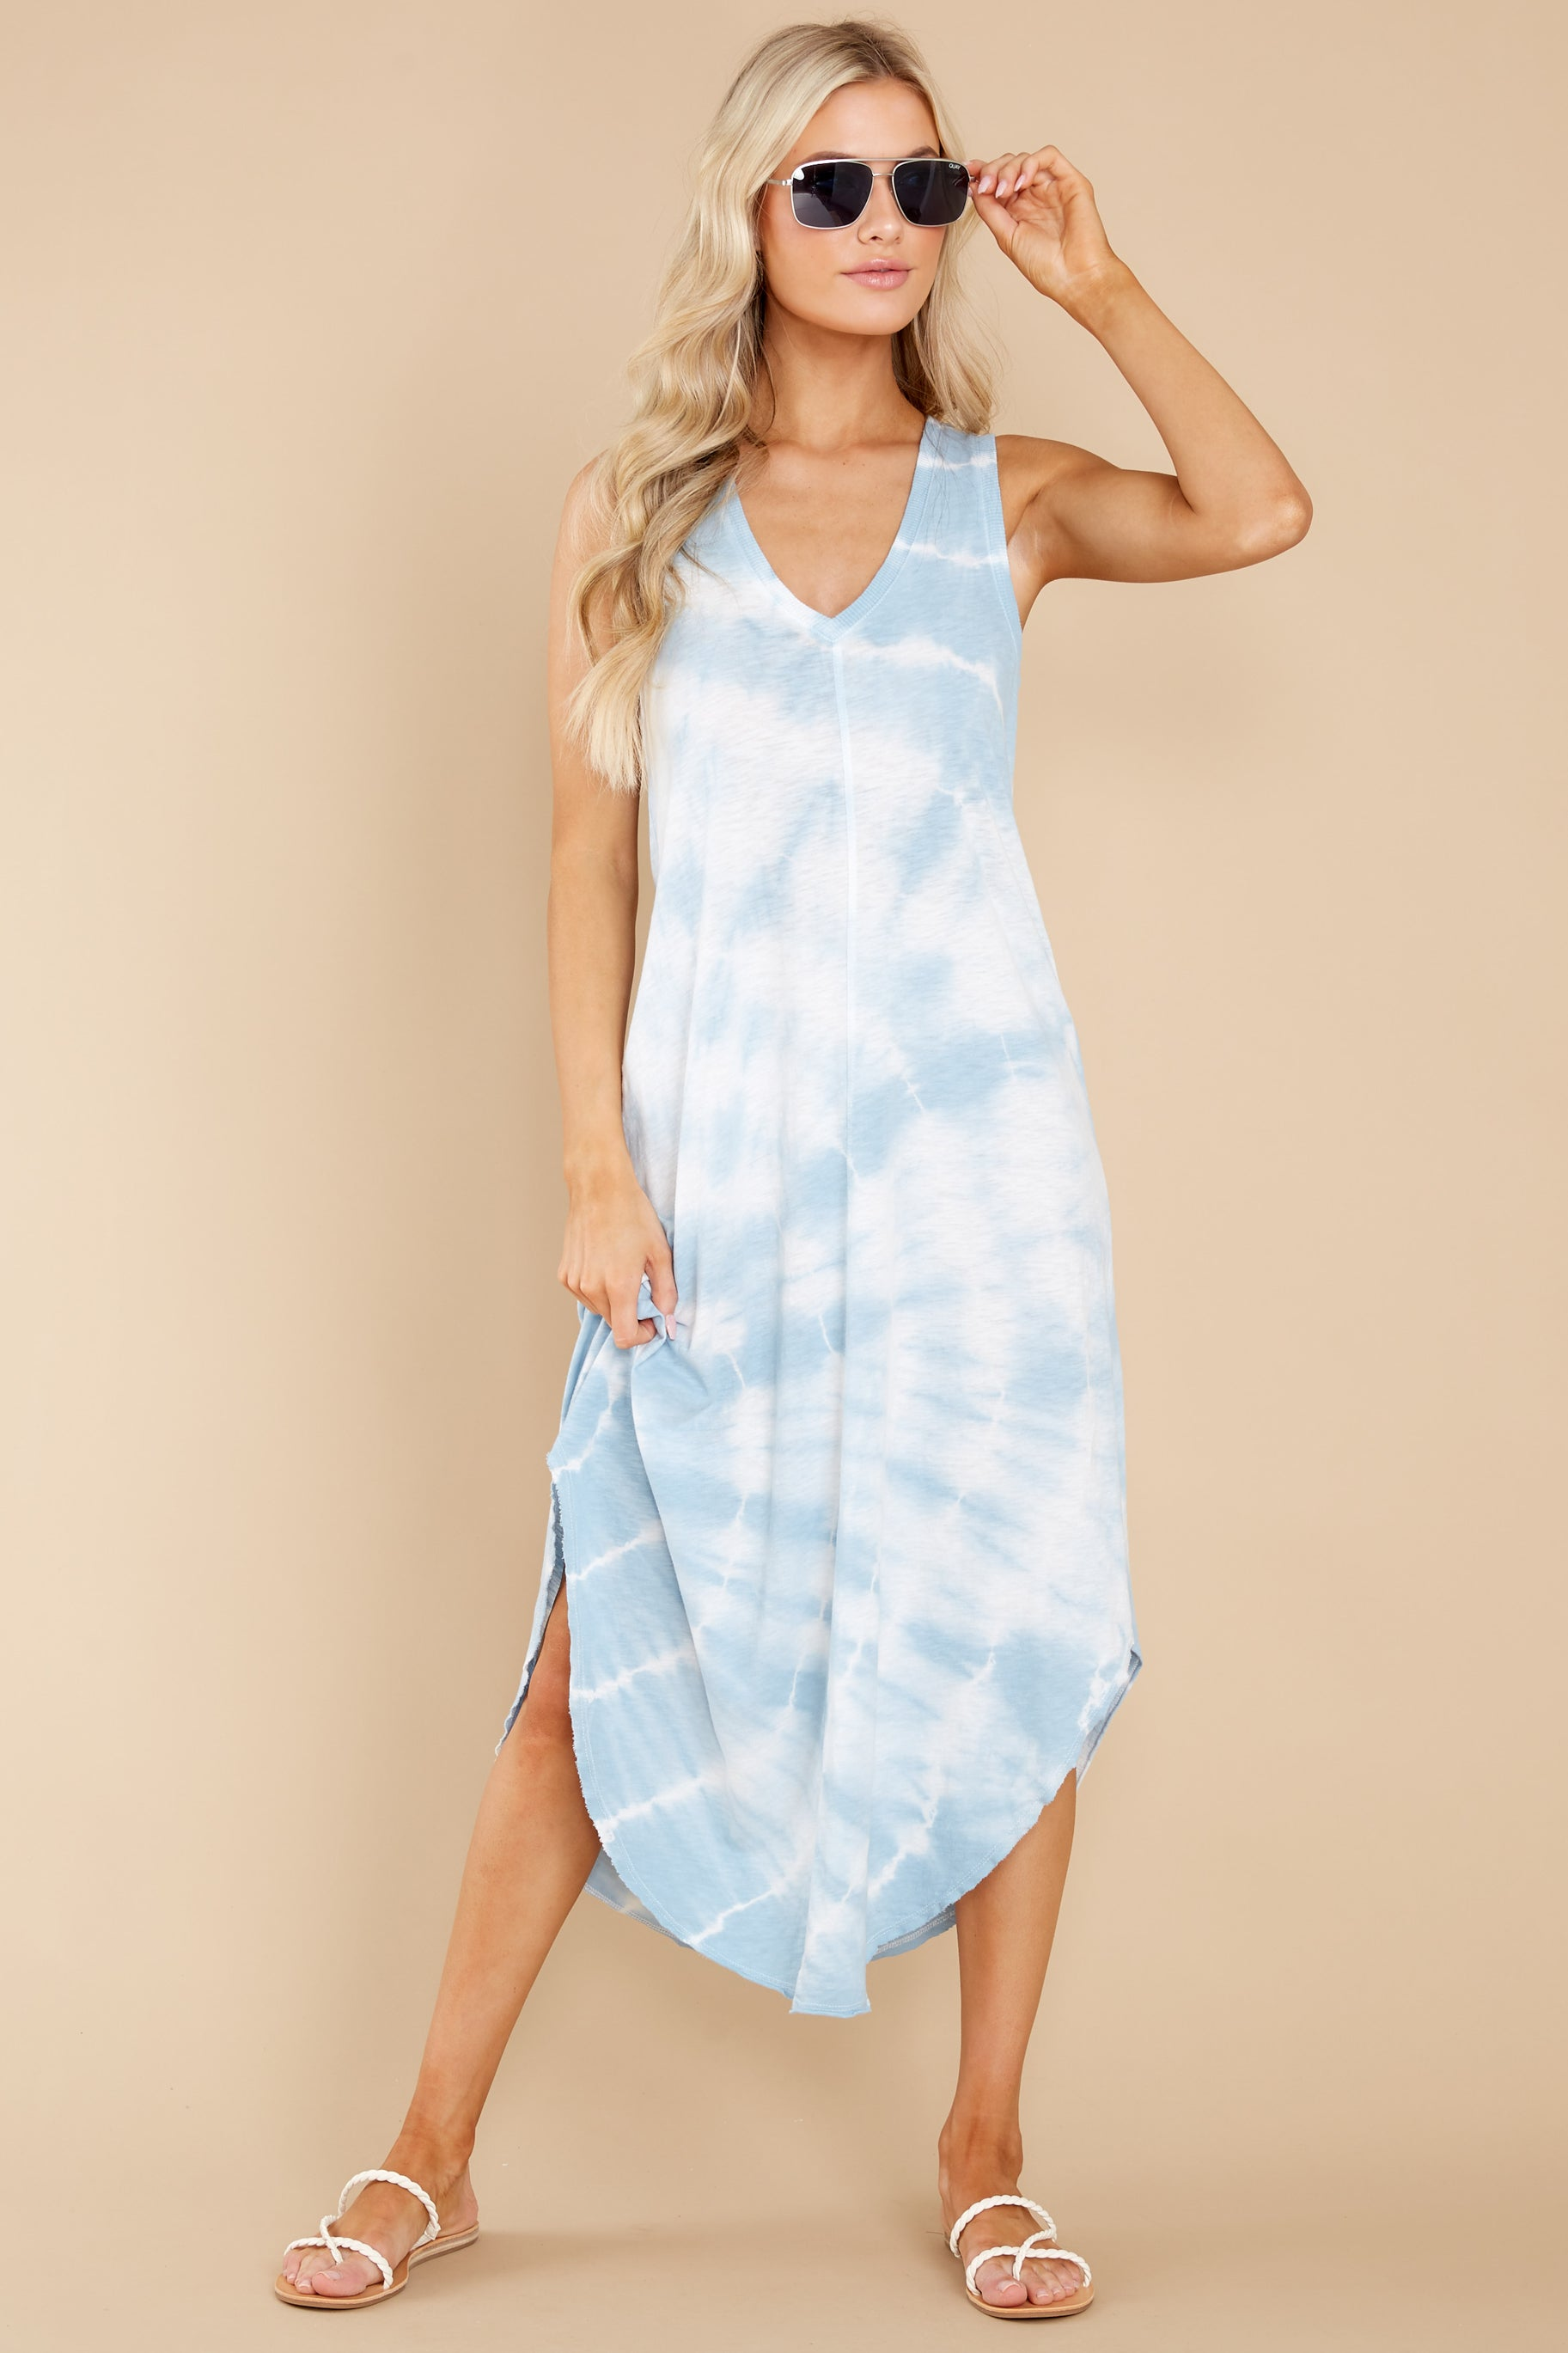 7 Reverie Blue Agave Spiral Tie Dye Dress at reddress.com